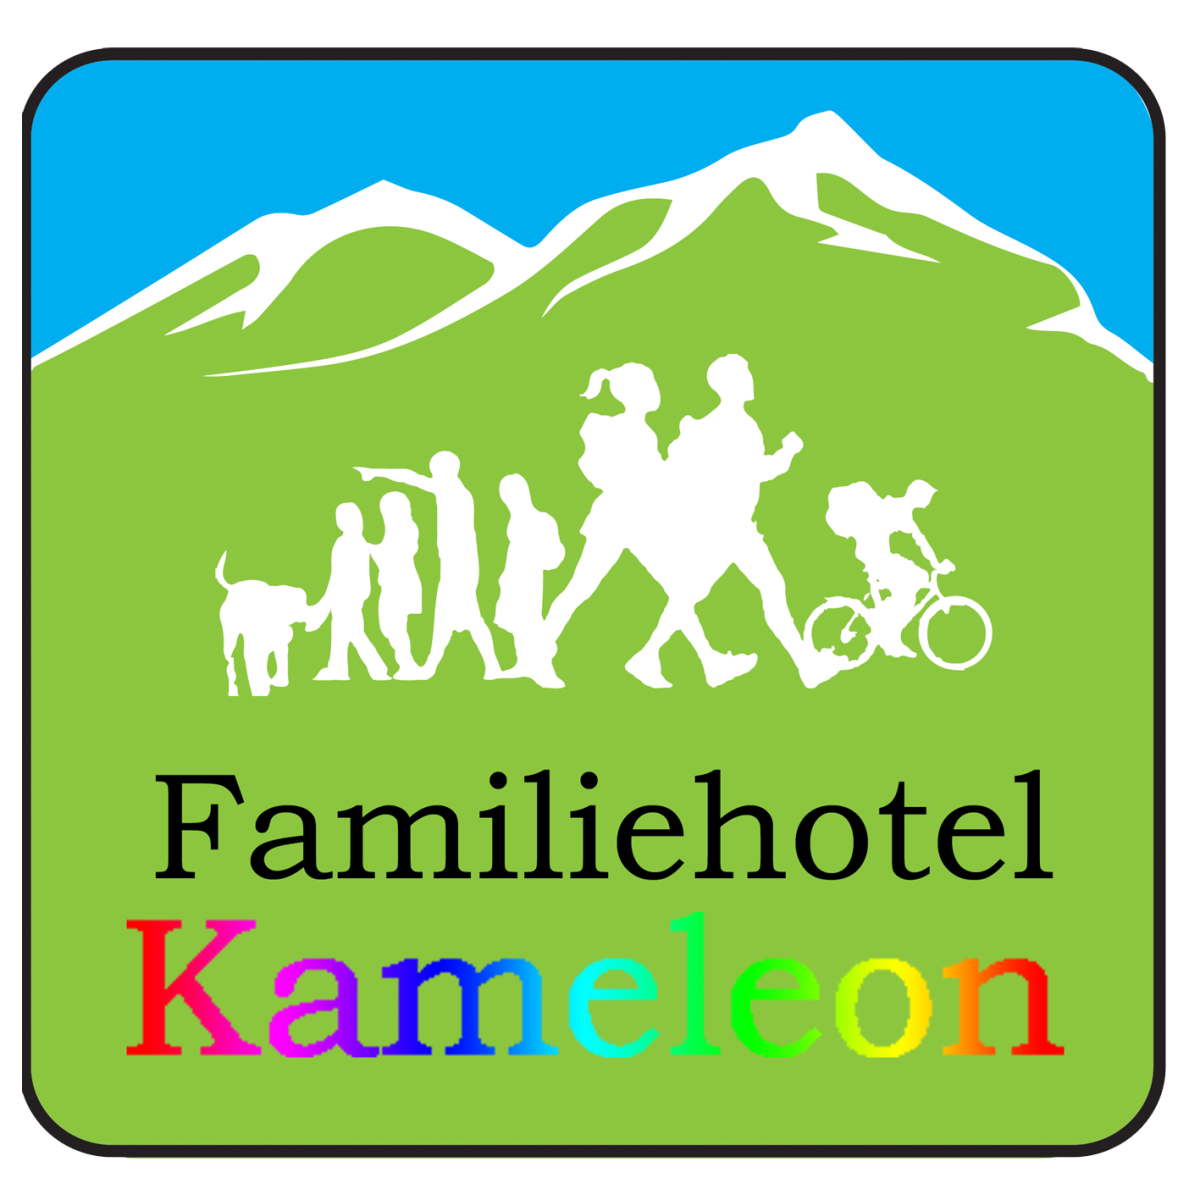 Hotel Management Software Clients - Familiehotel Kameleon